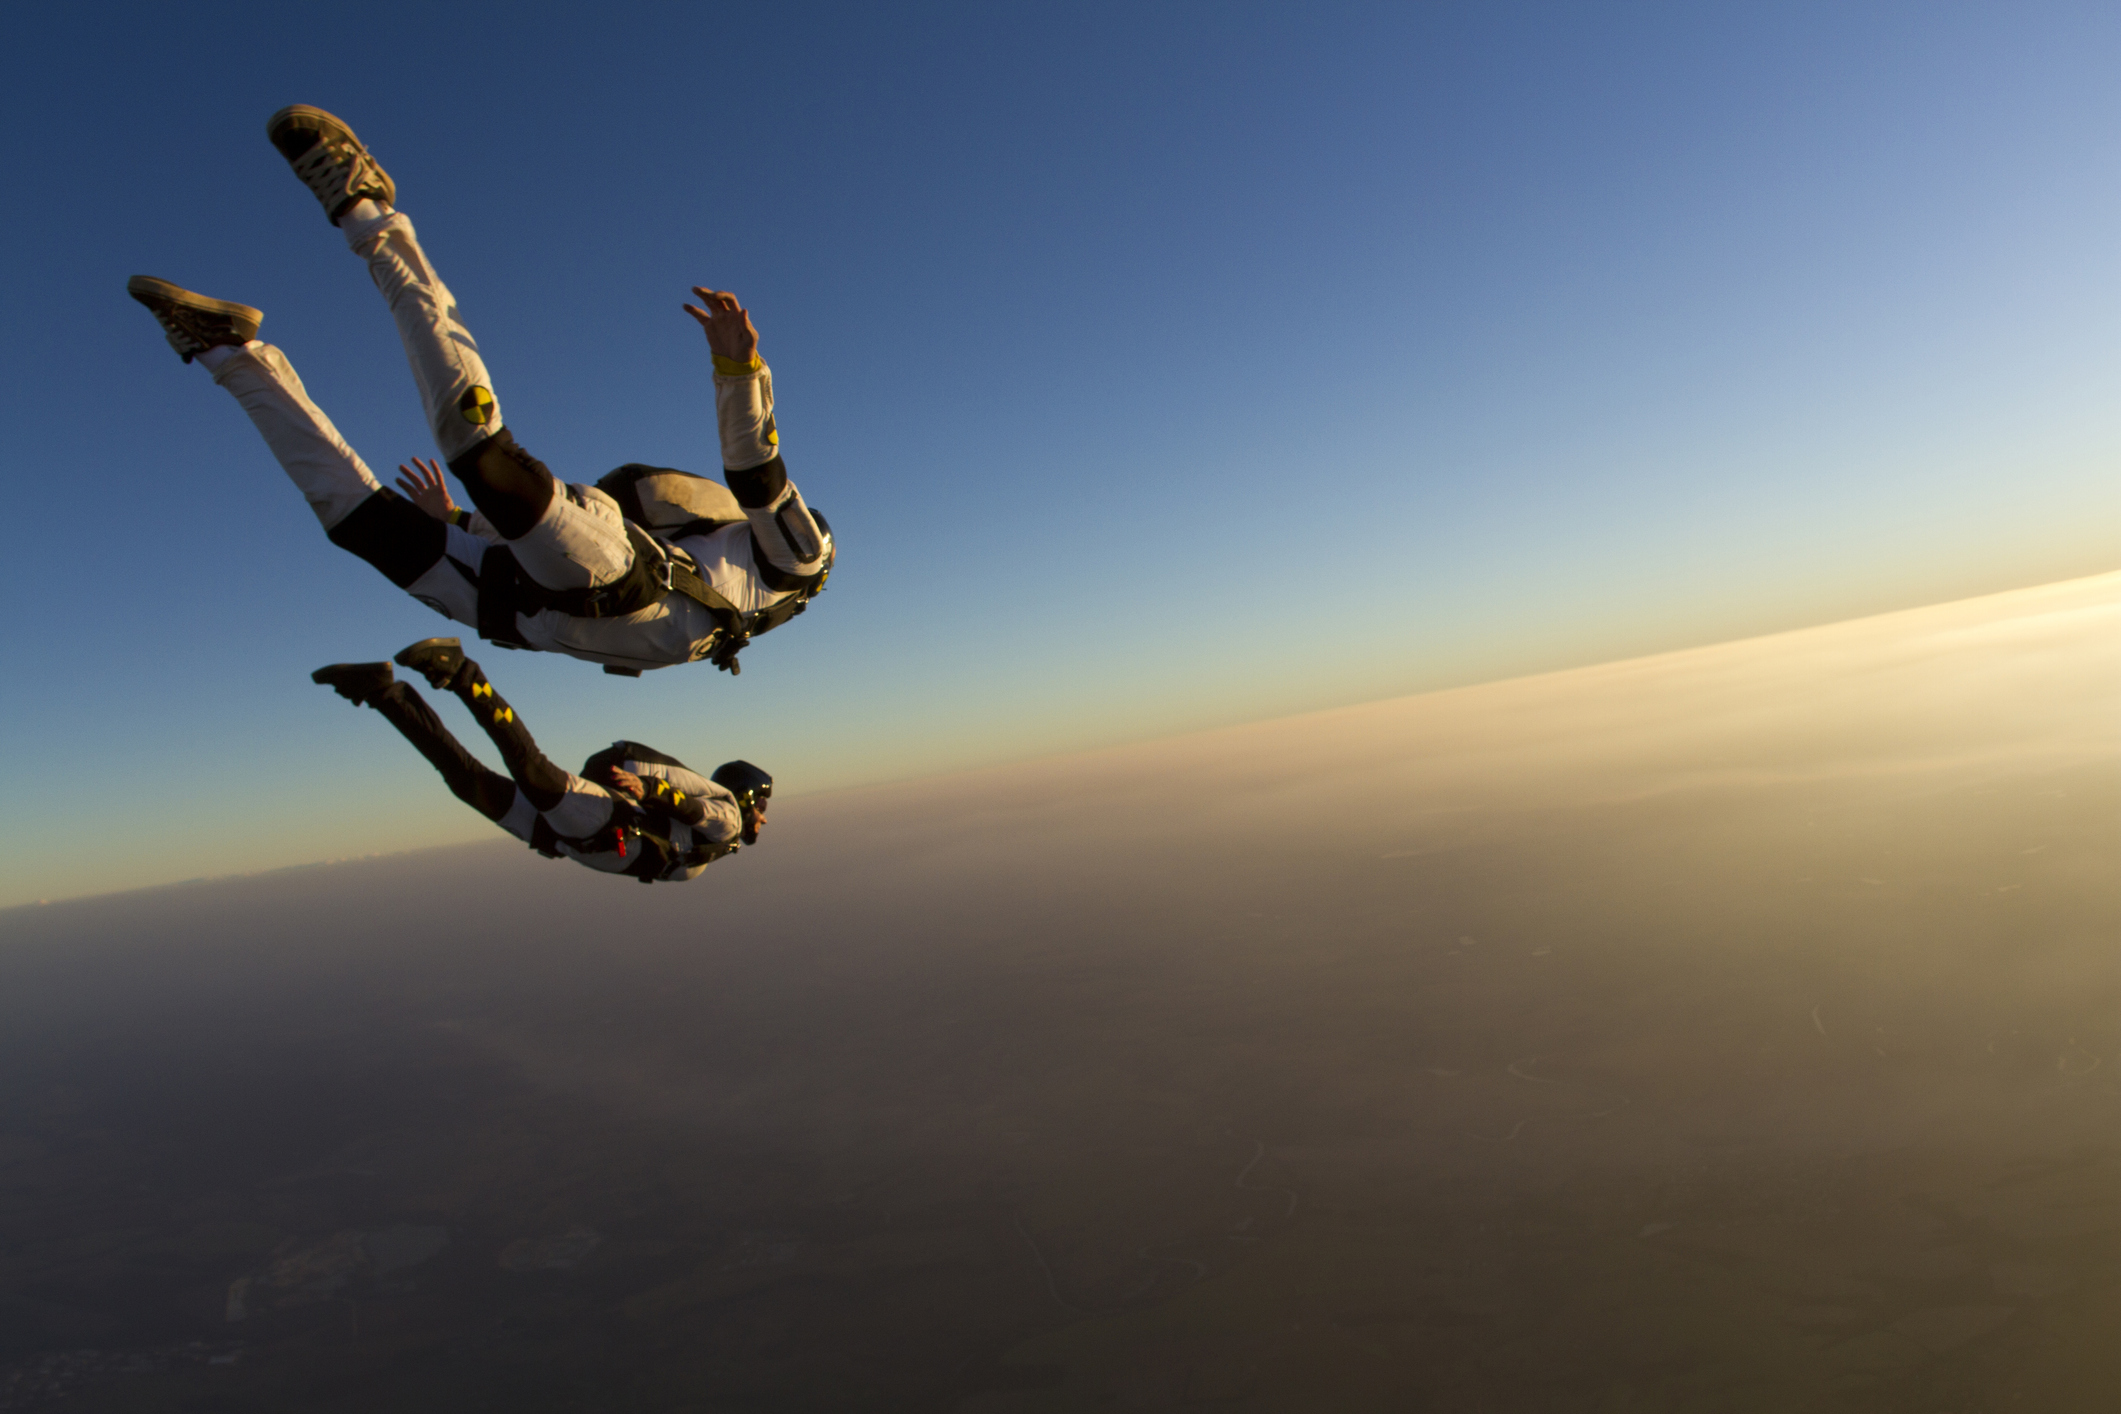 How Shareholders Prepare for the (Possible) Deaths of Adrenaline-Loving CEOs - InsideHook